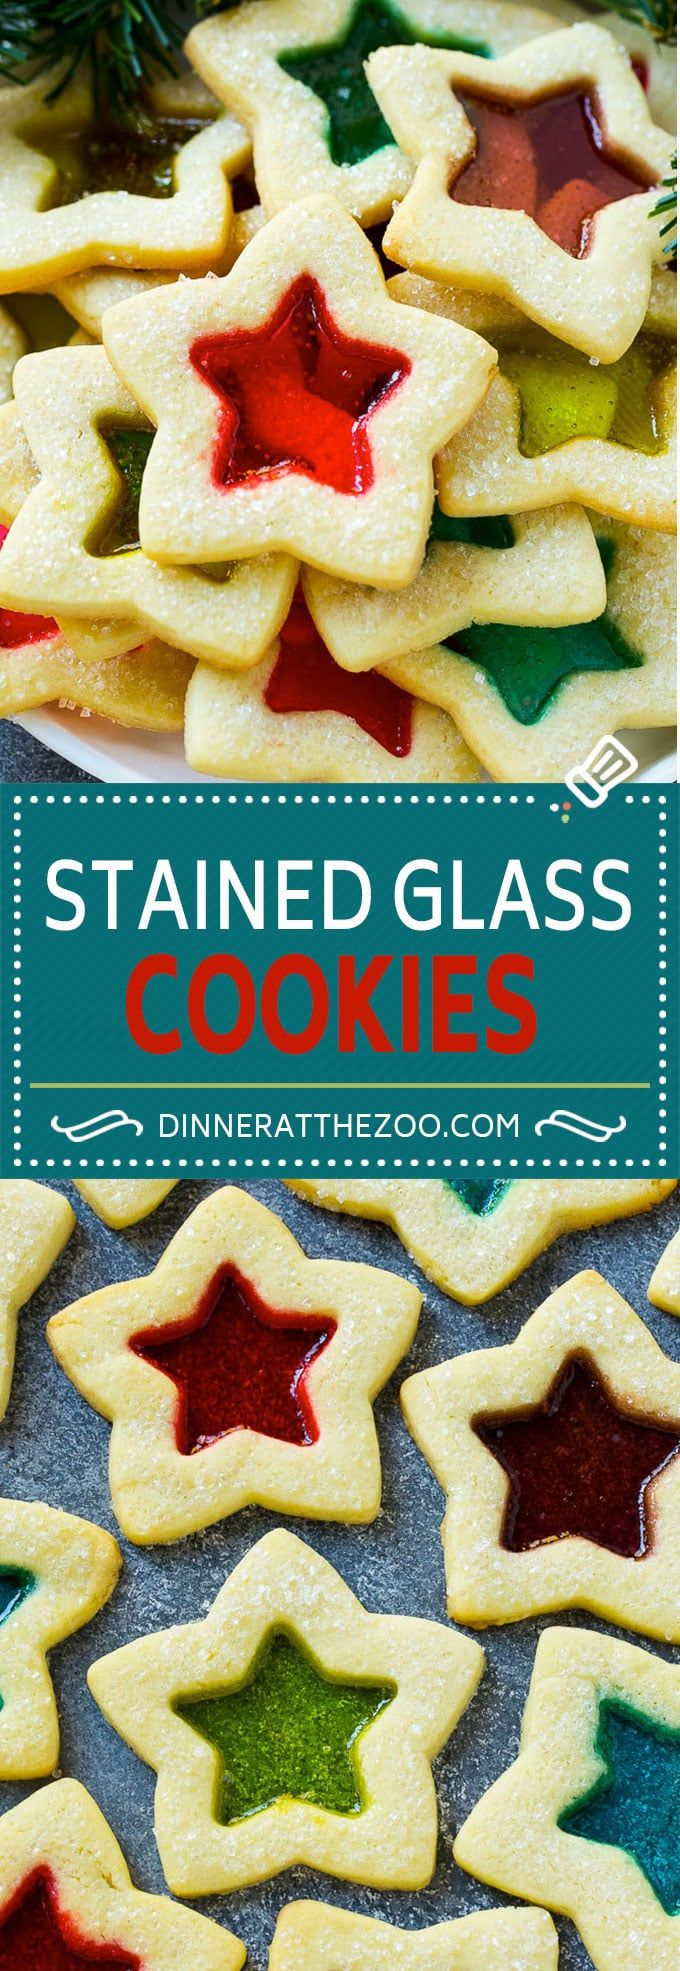 Stained Glass Cookies   Stained Glass Window Cookies   Sugar Cookies   Christmas Cookies